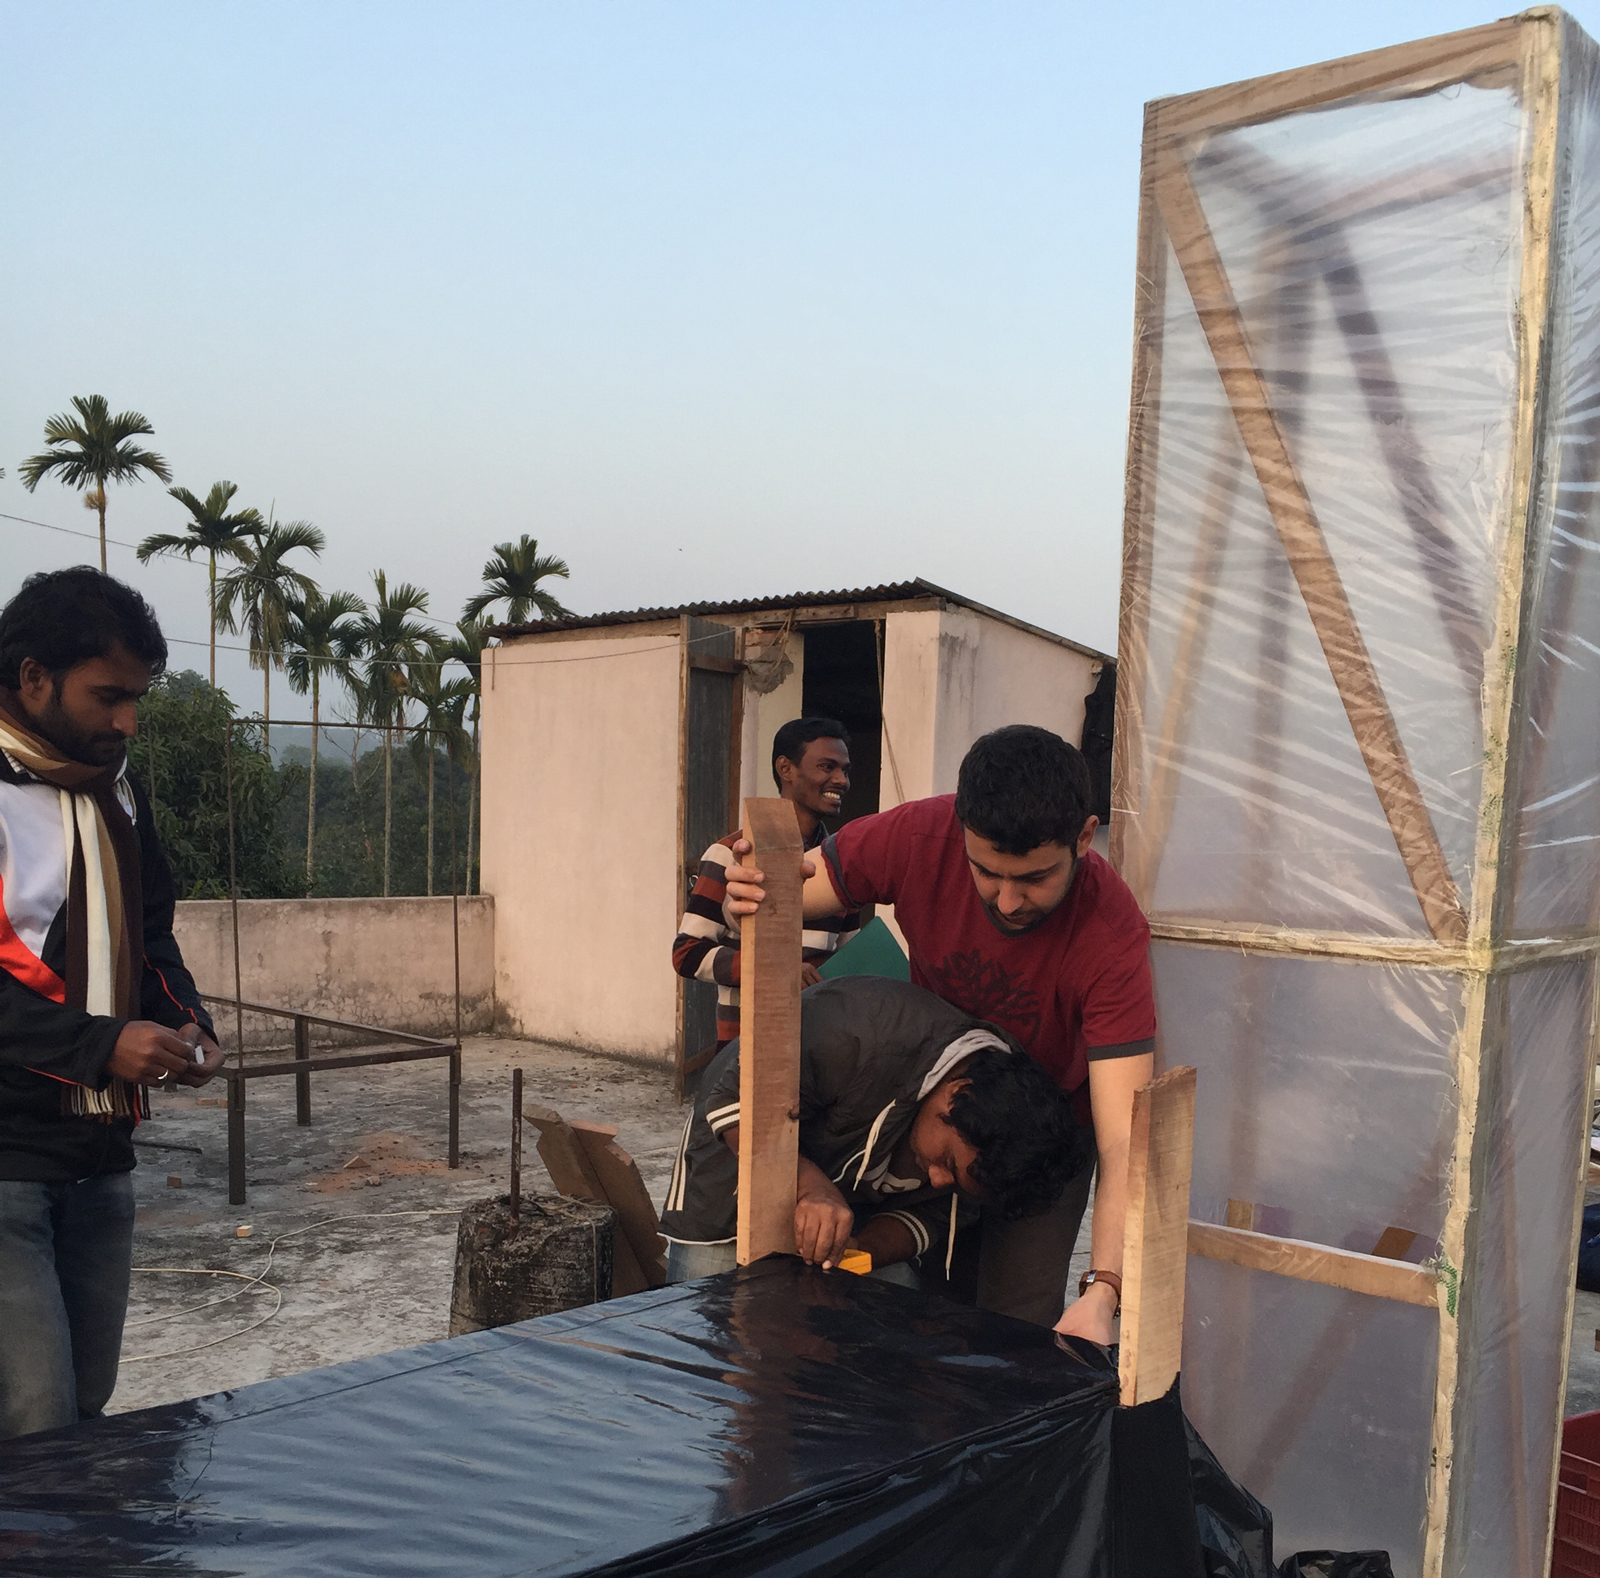 Two researchers connect a black table to a clear chimney to build a solar dryer